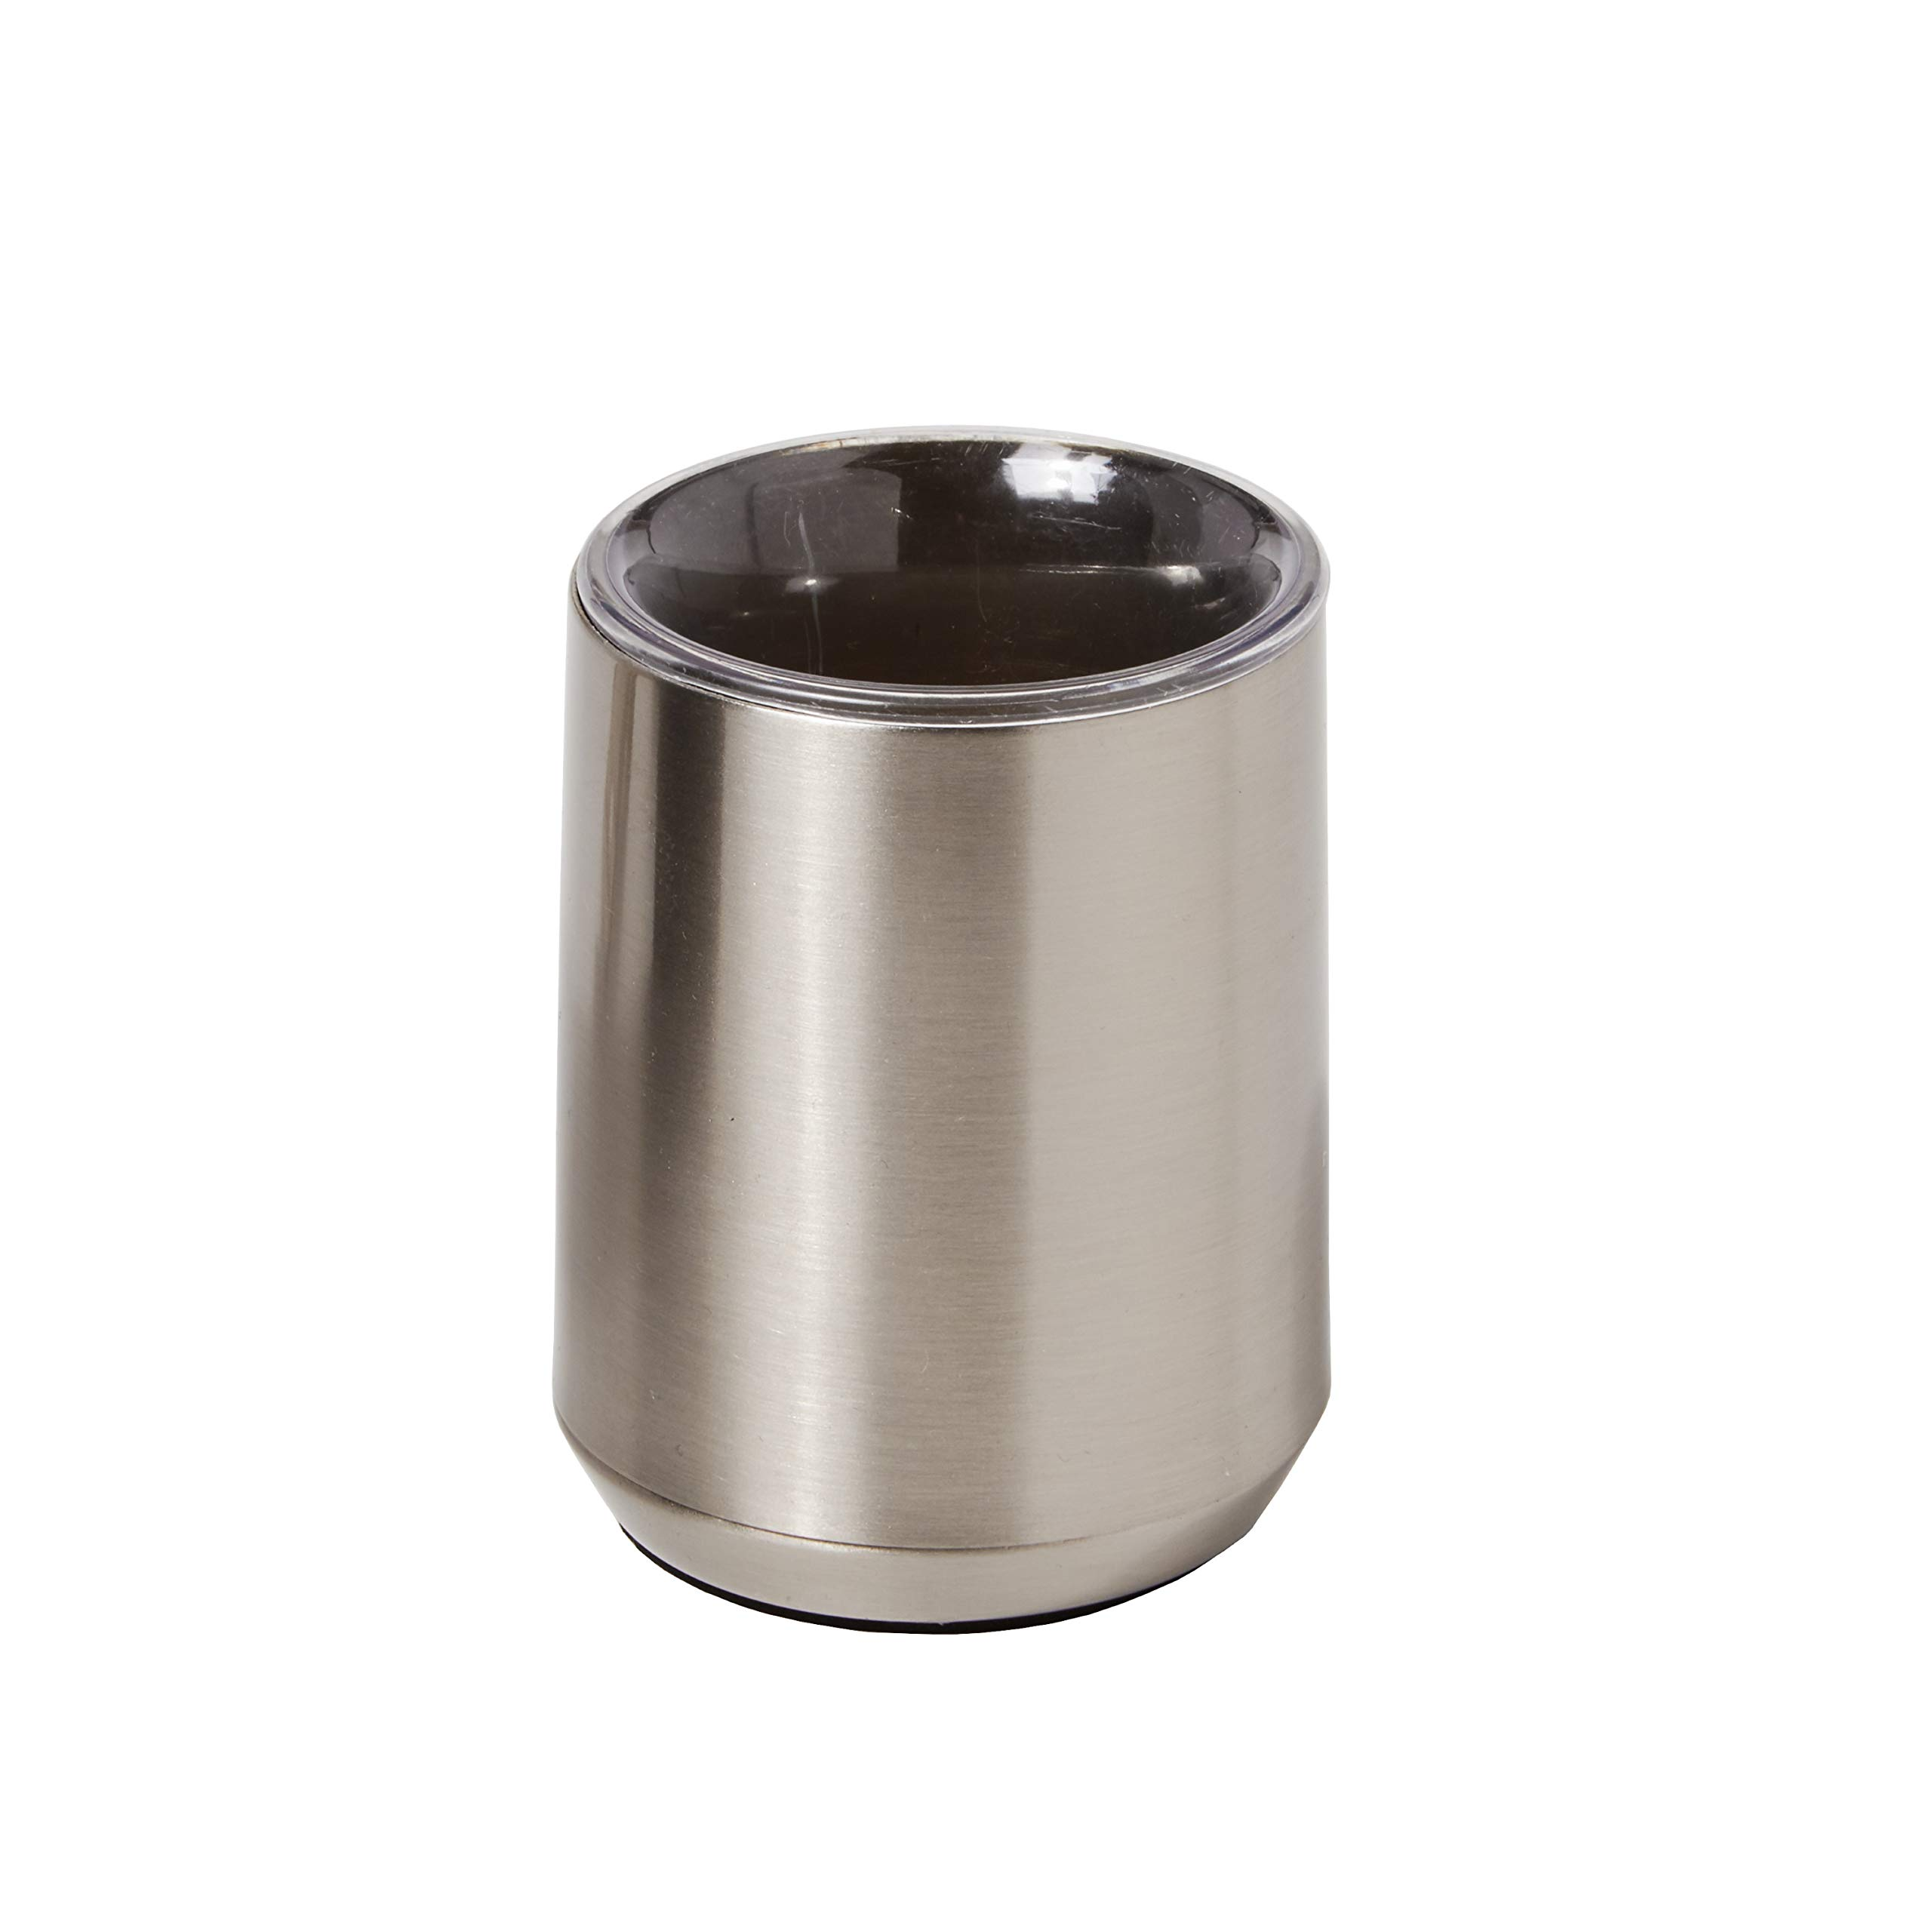 SKL Home by Saturday Knight Ltd. Roche Tumbler, Nickel by SKL HOME by Saturday Knight Ltd.